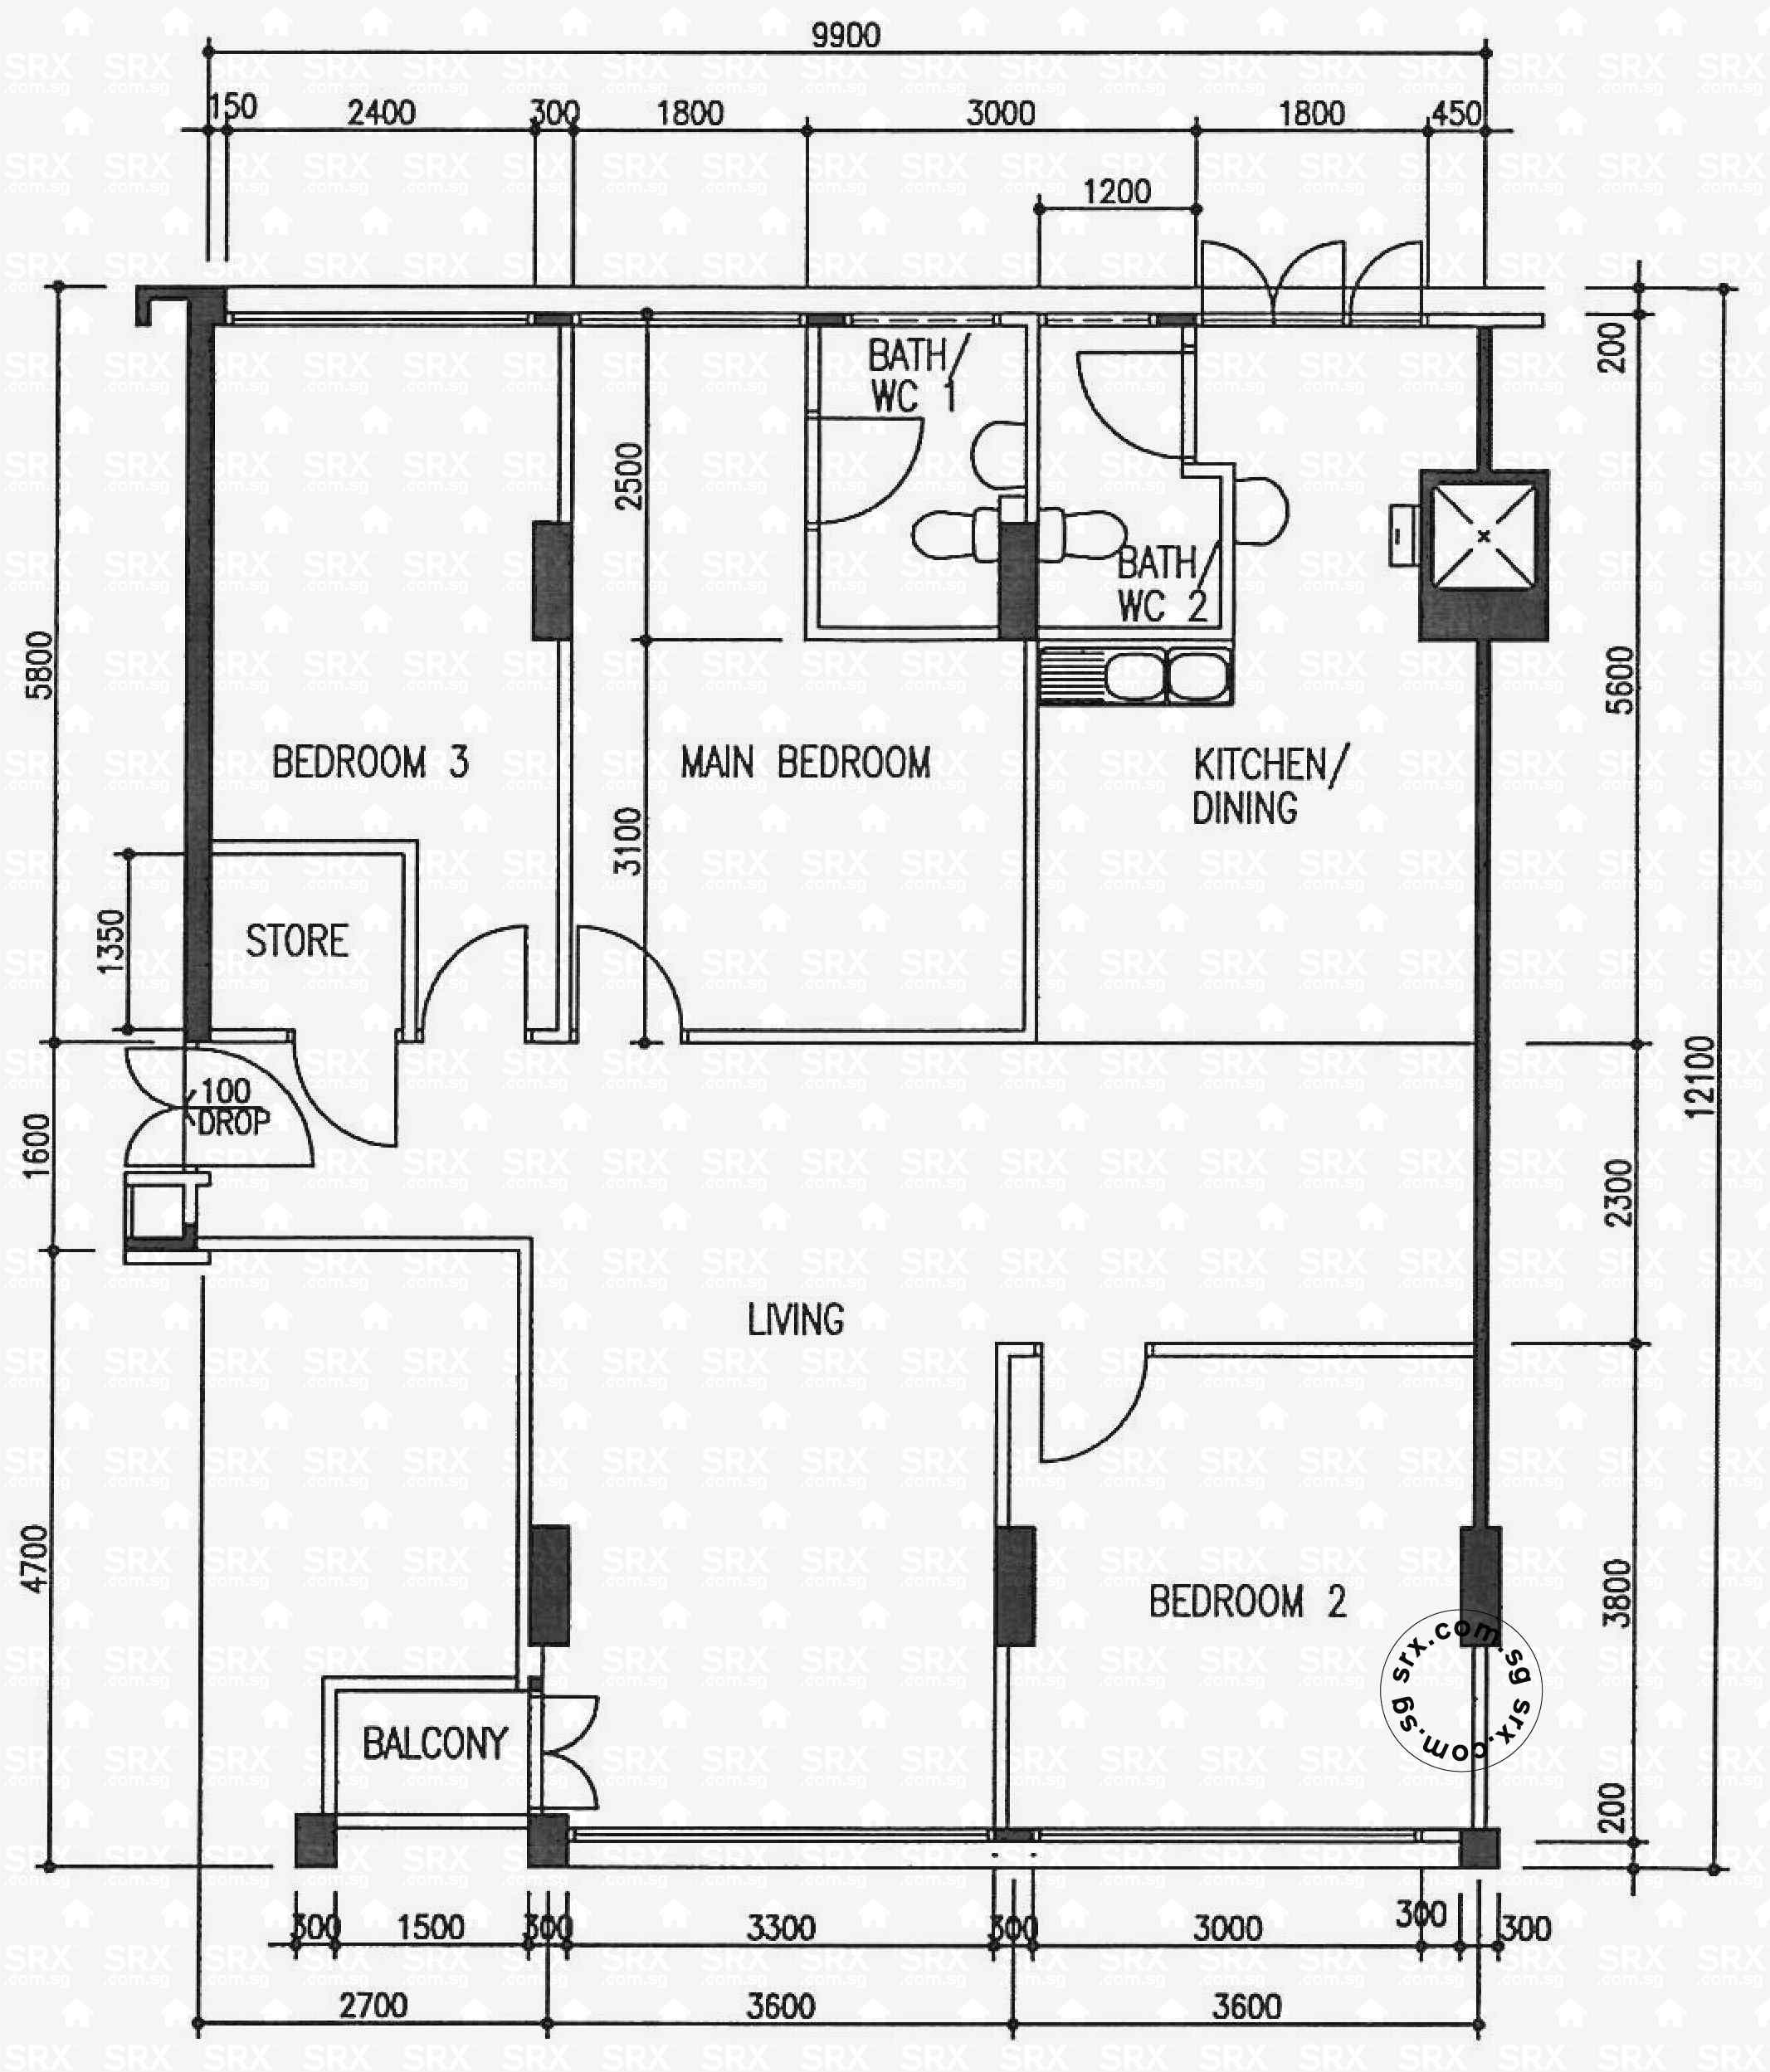 Floor plans for pasir ris street 11 hdb details srx property for 126 simcoe st floor plan